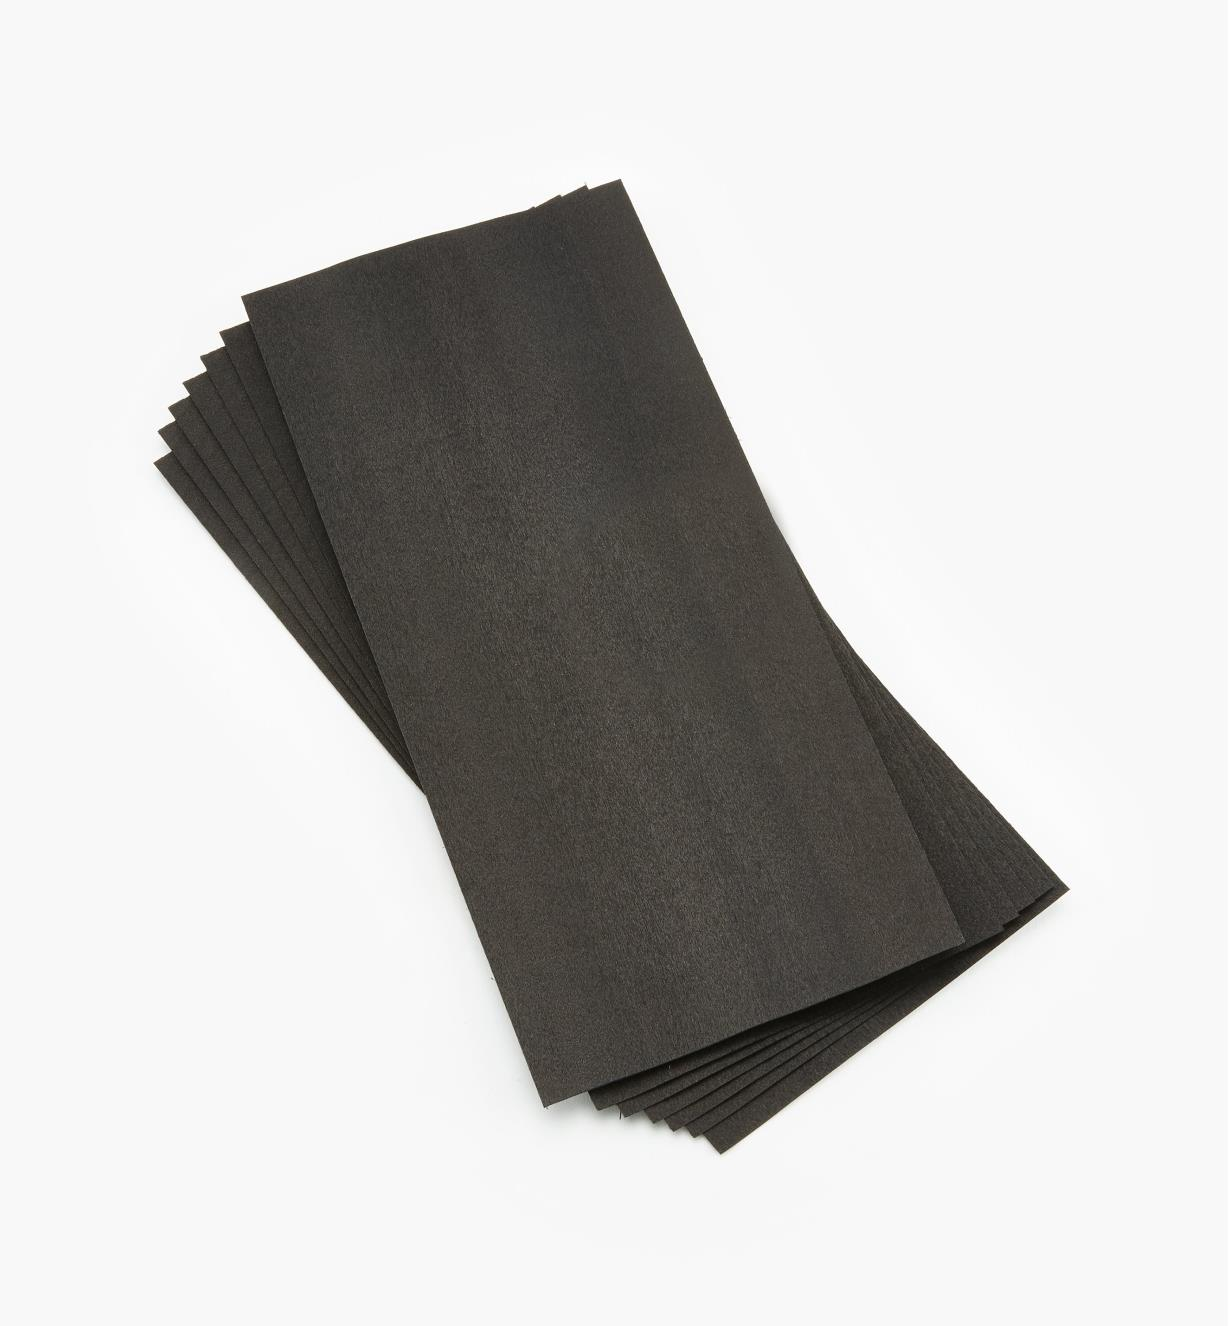 55K6420 - Dyed Black, 3 sq.ft.